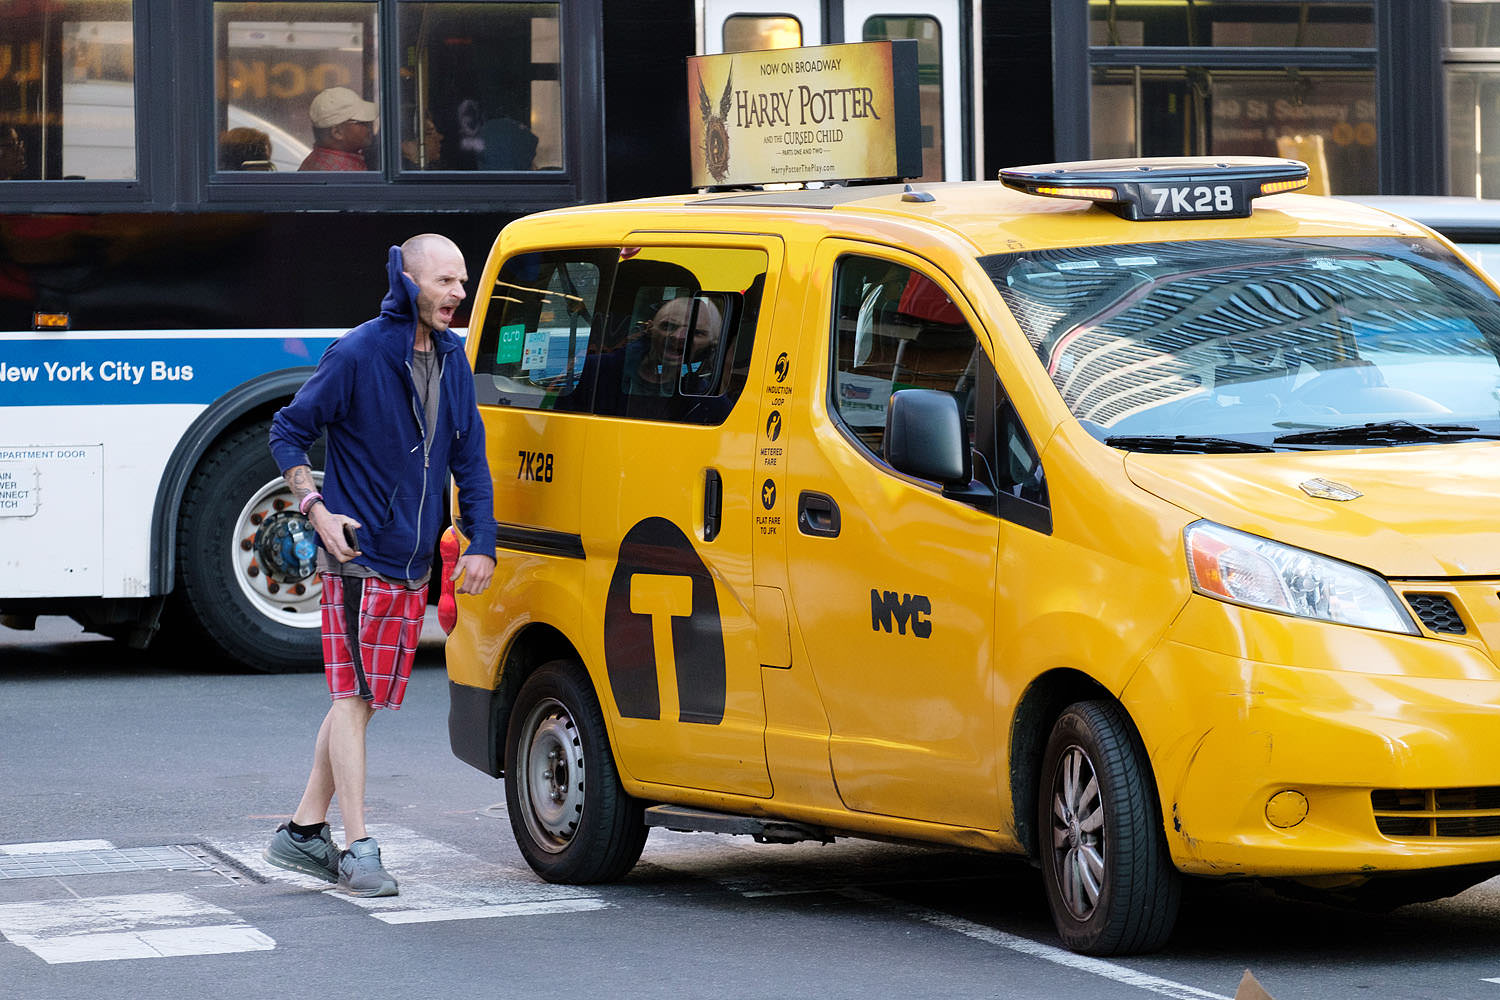 Pedestrian yells at taxi (New York, New York)